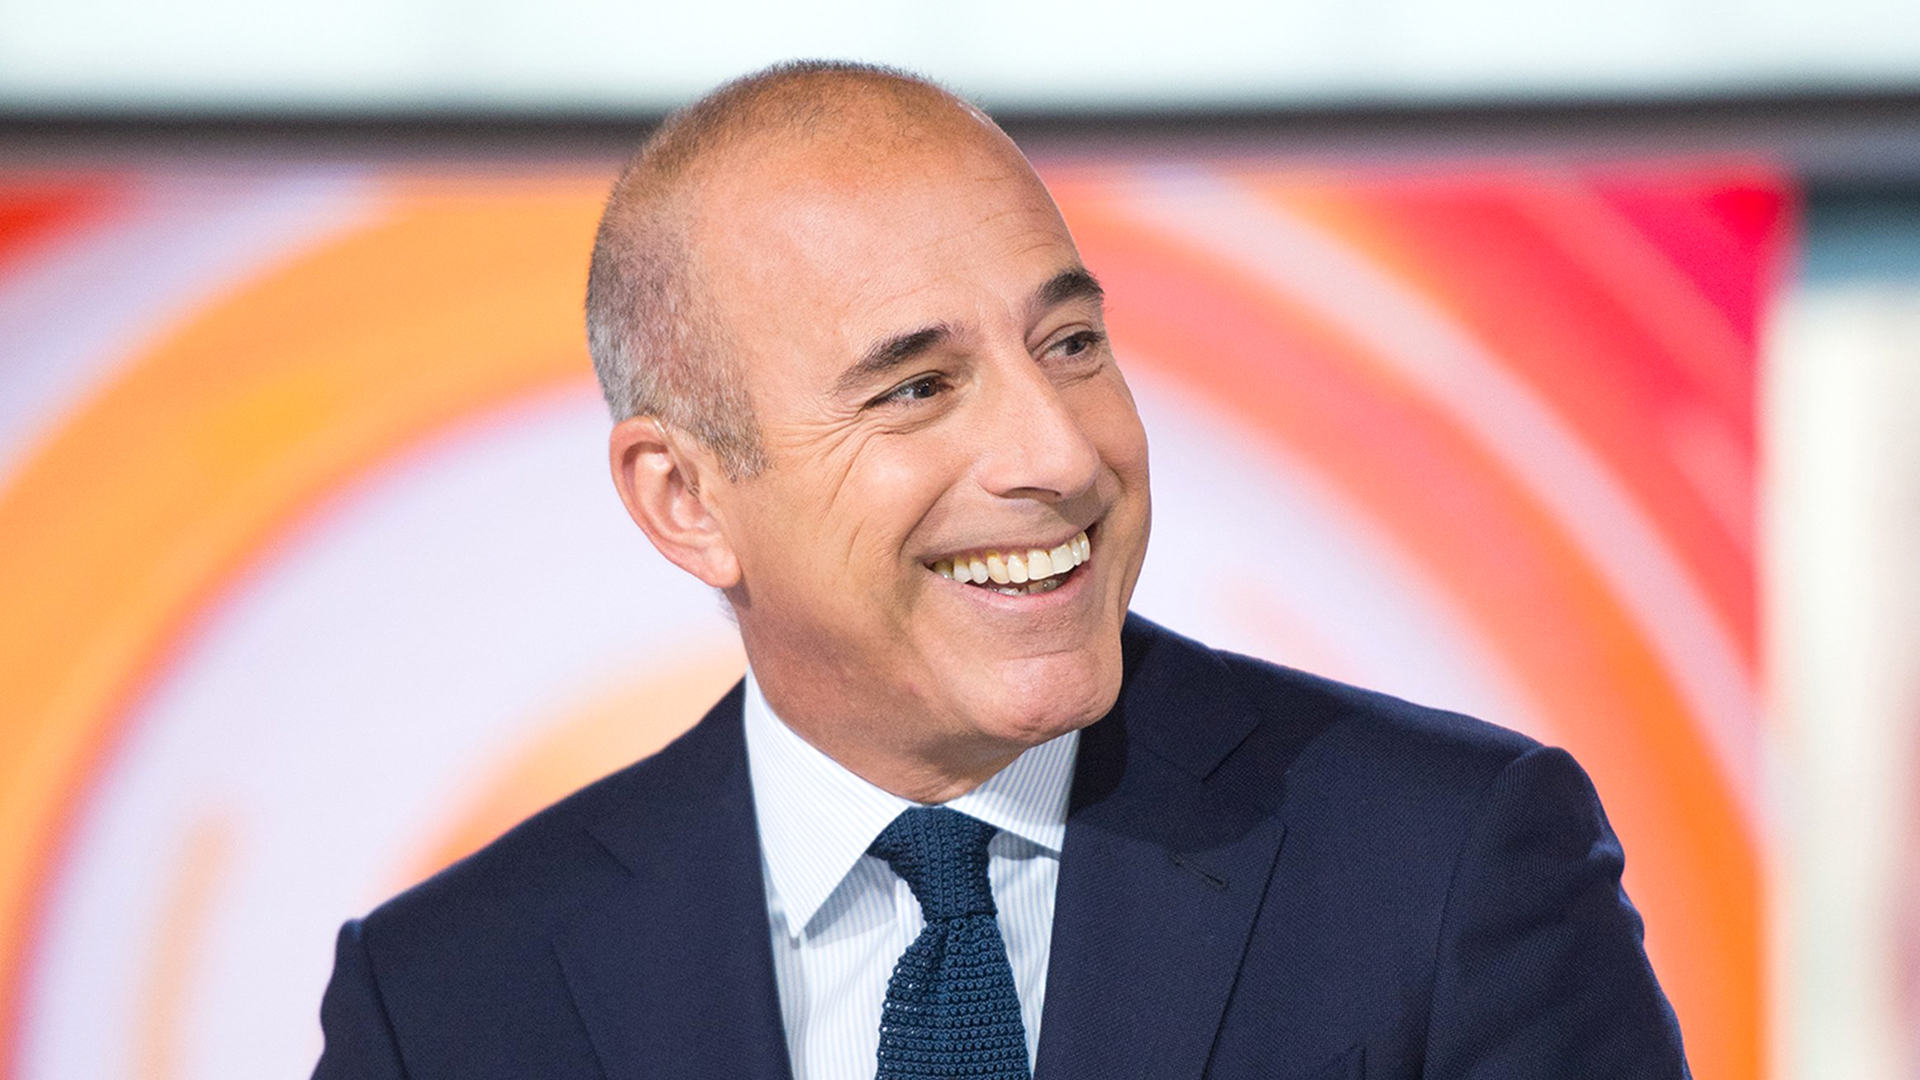 Former 'TODAY' anchor Matt Lauer apologizes in statement after dismissal for sexual misconduct